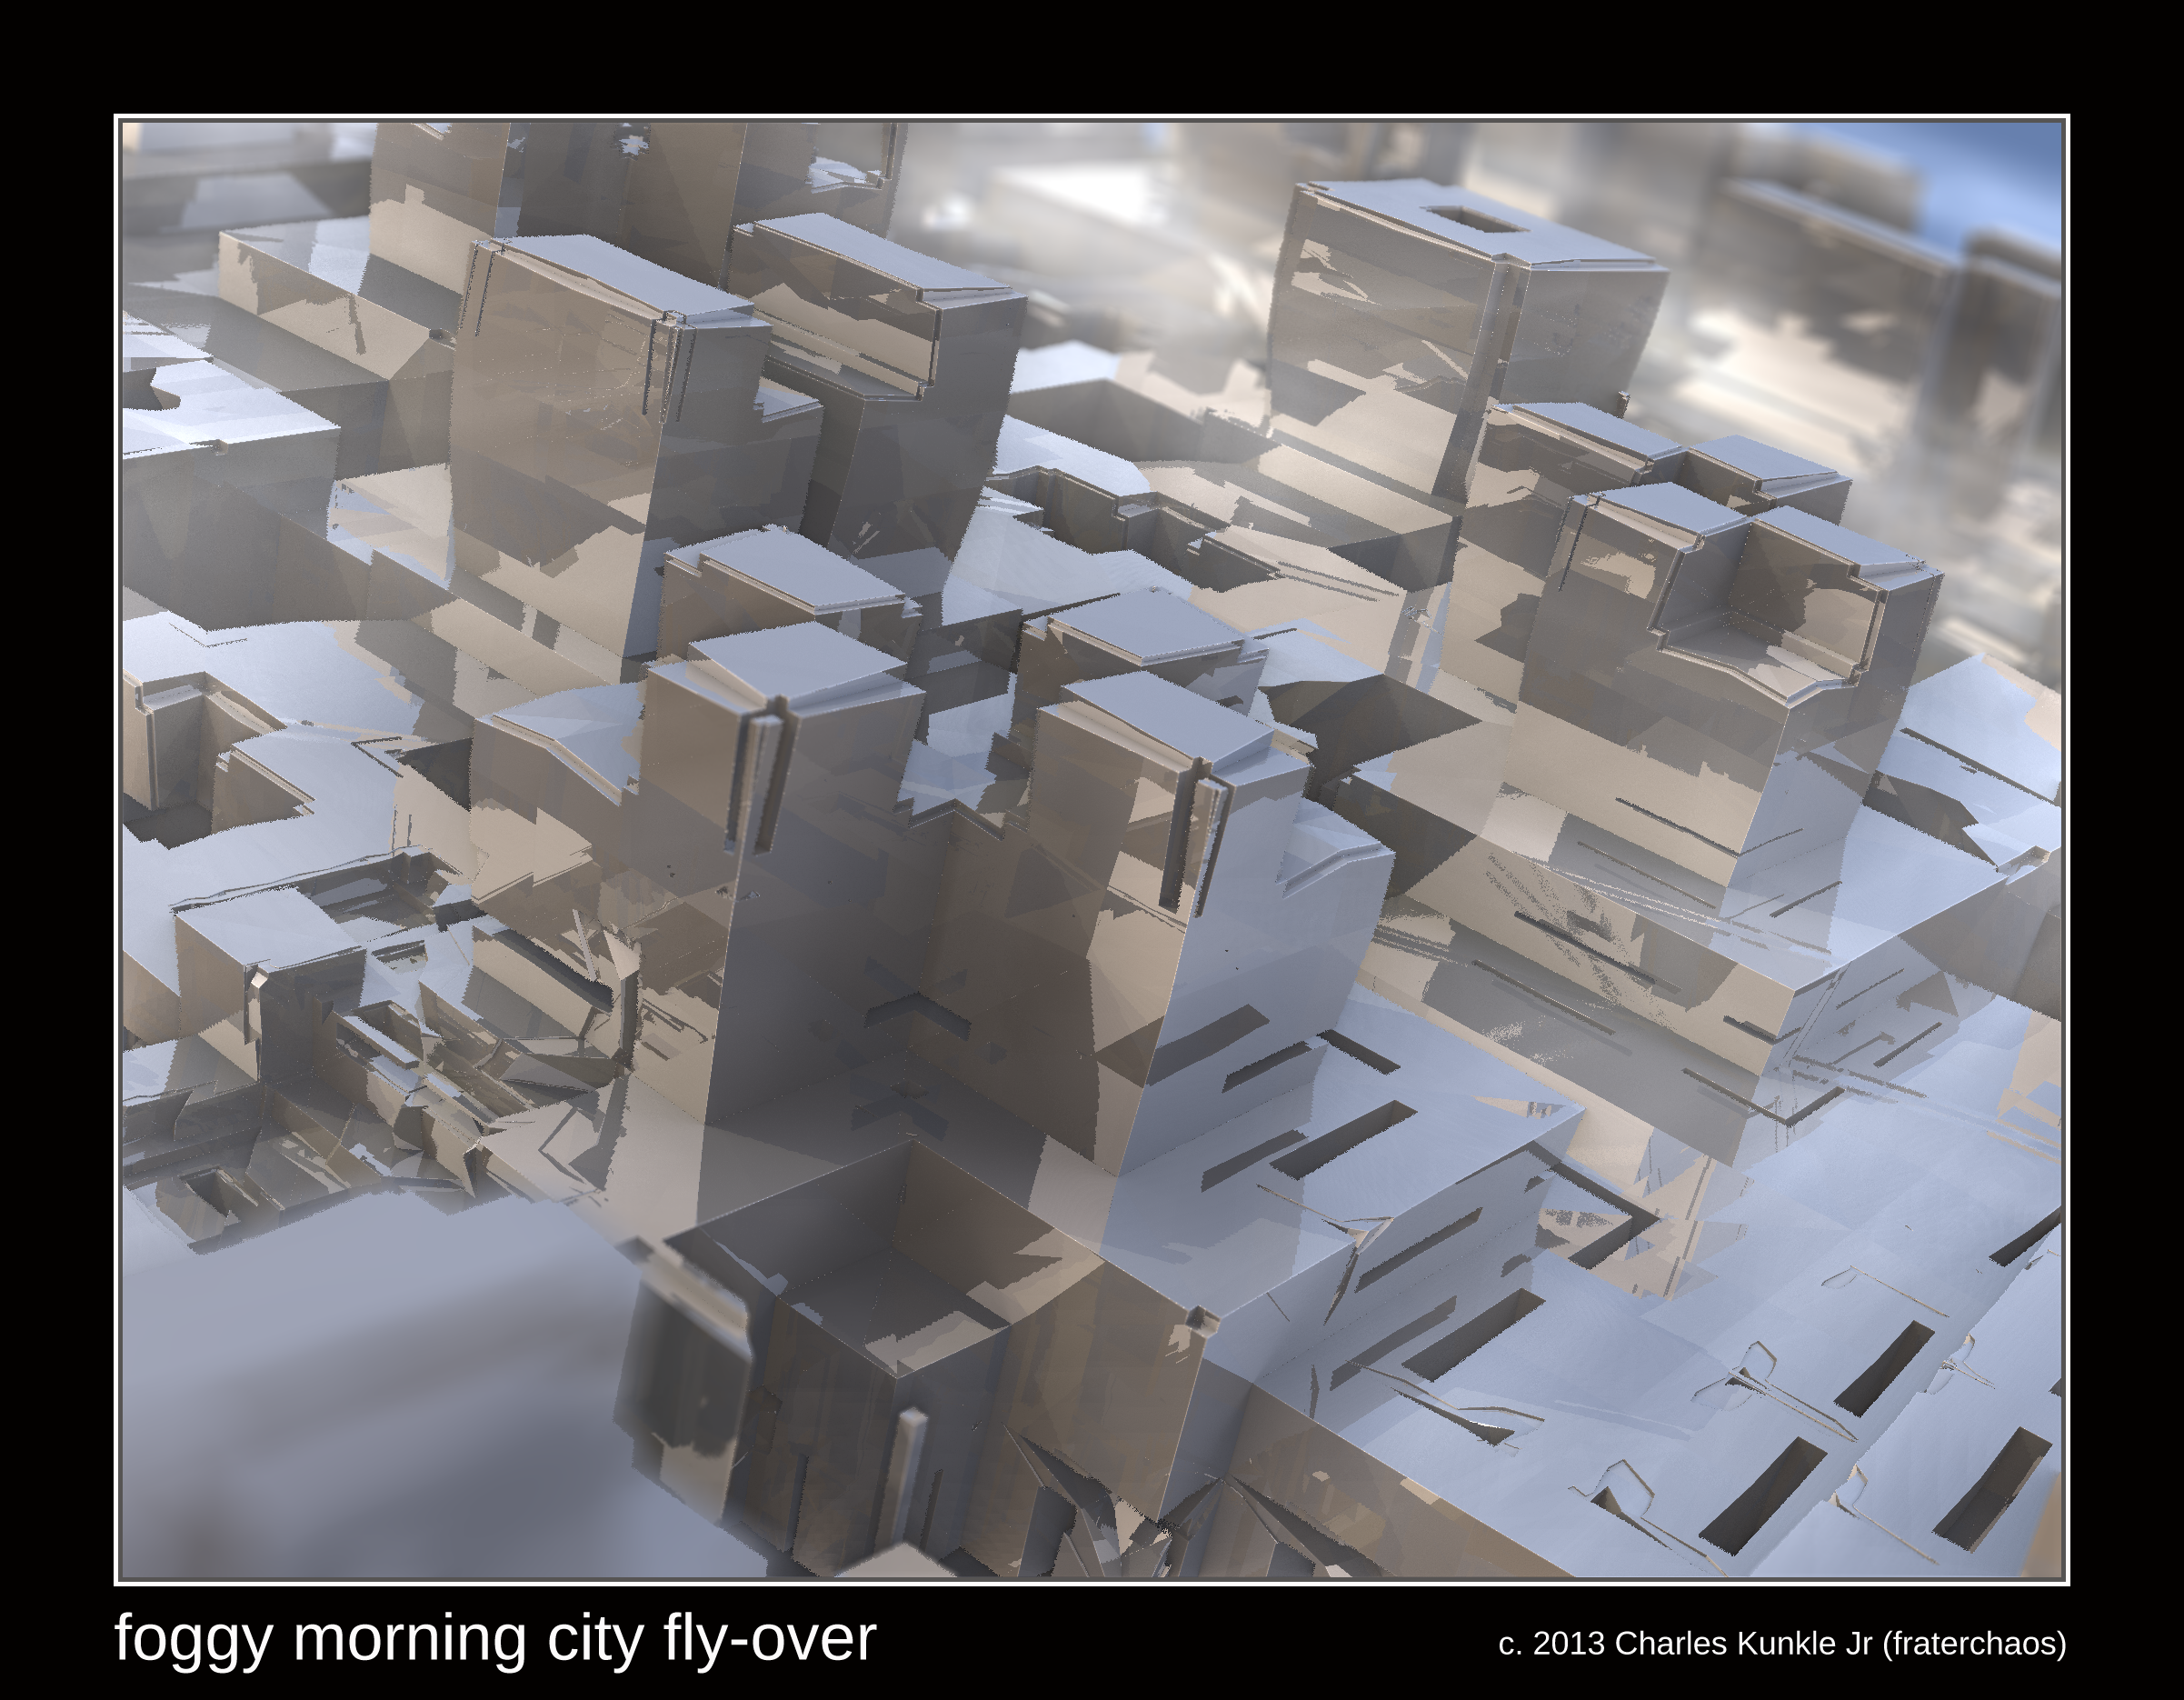 foggy morning city fly-over by fraterchaos